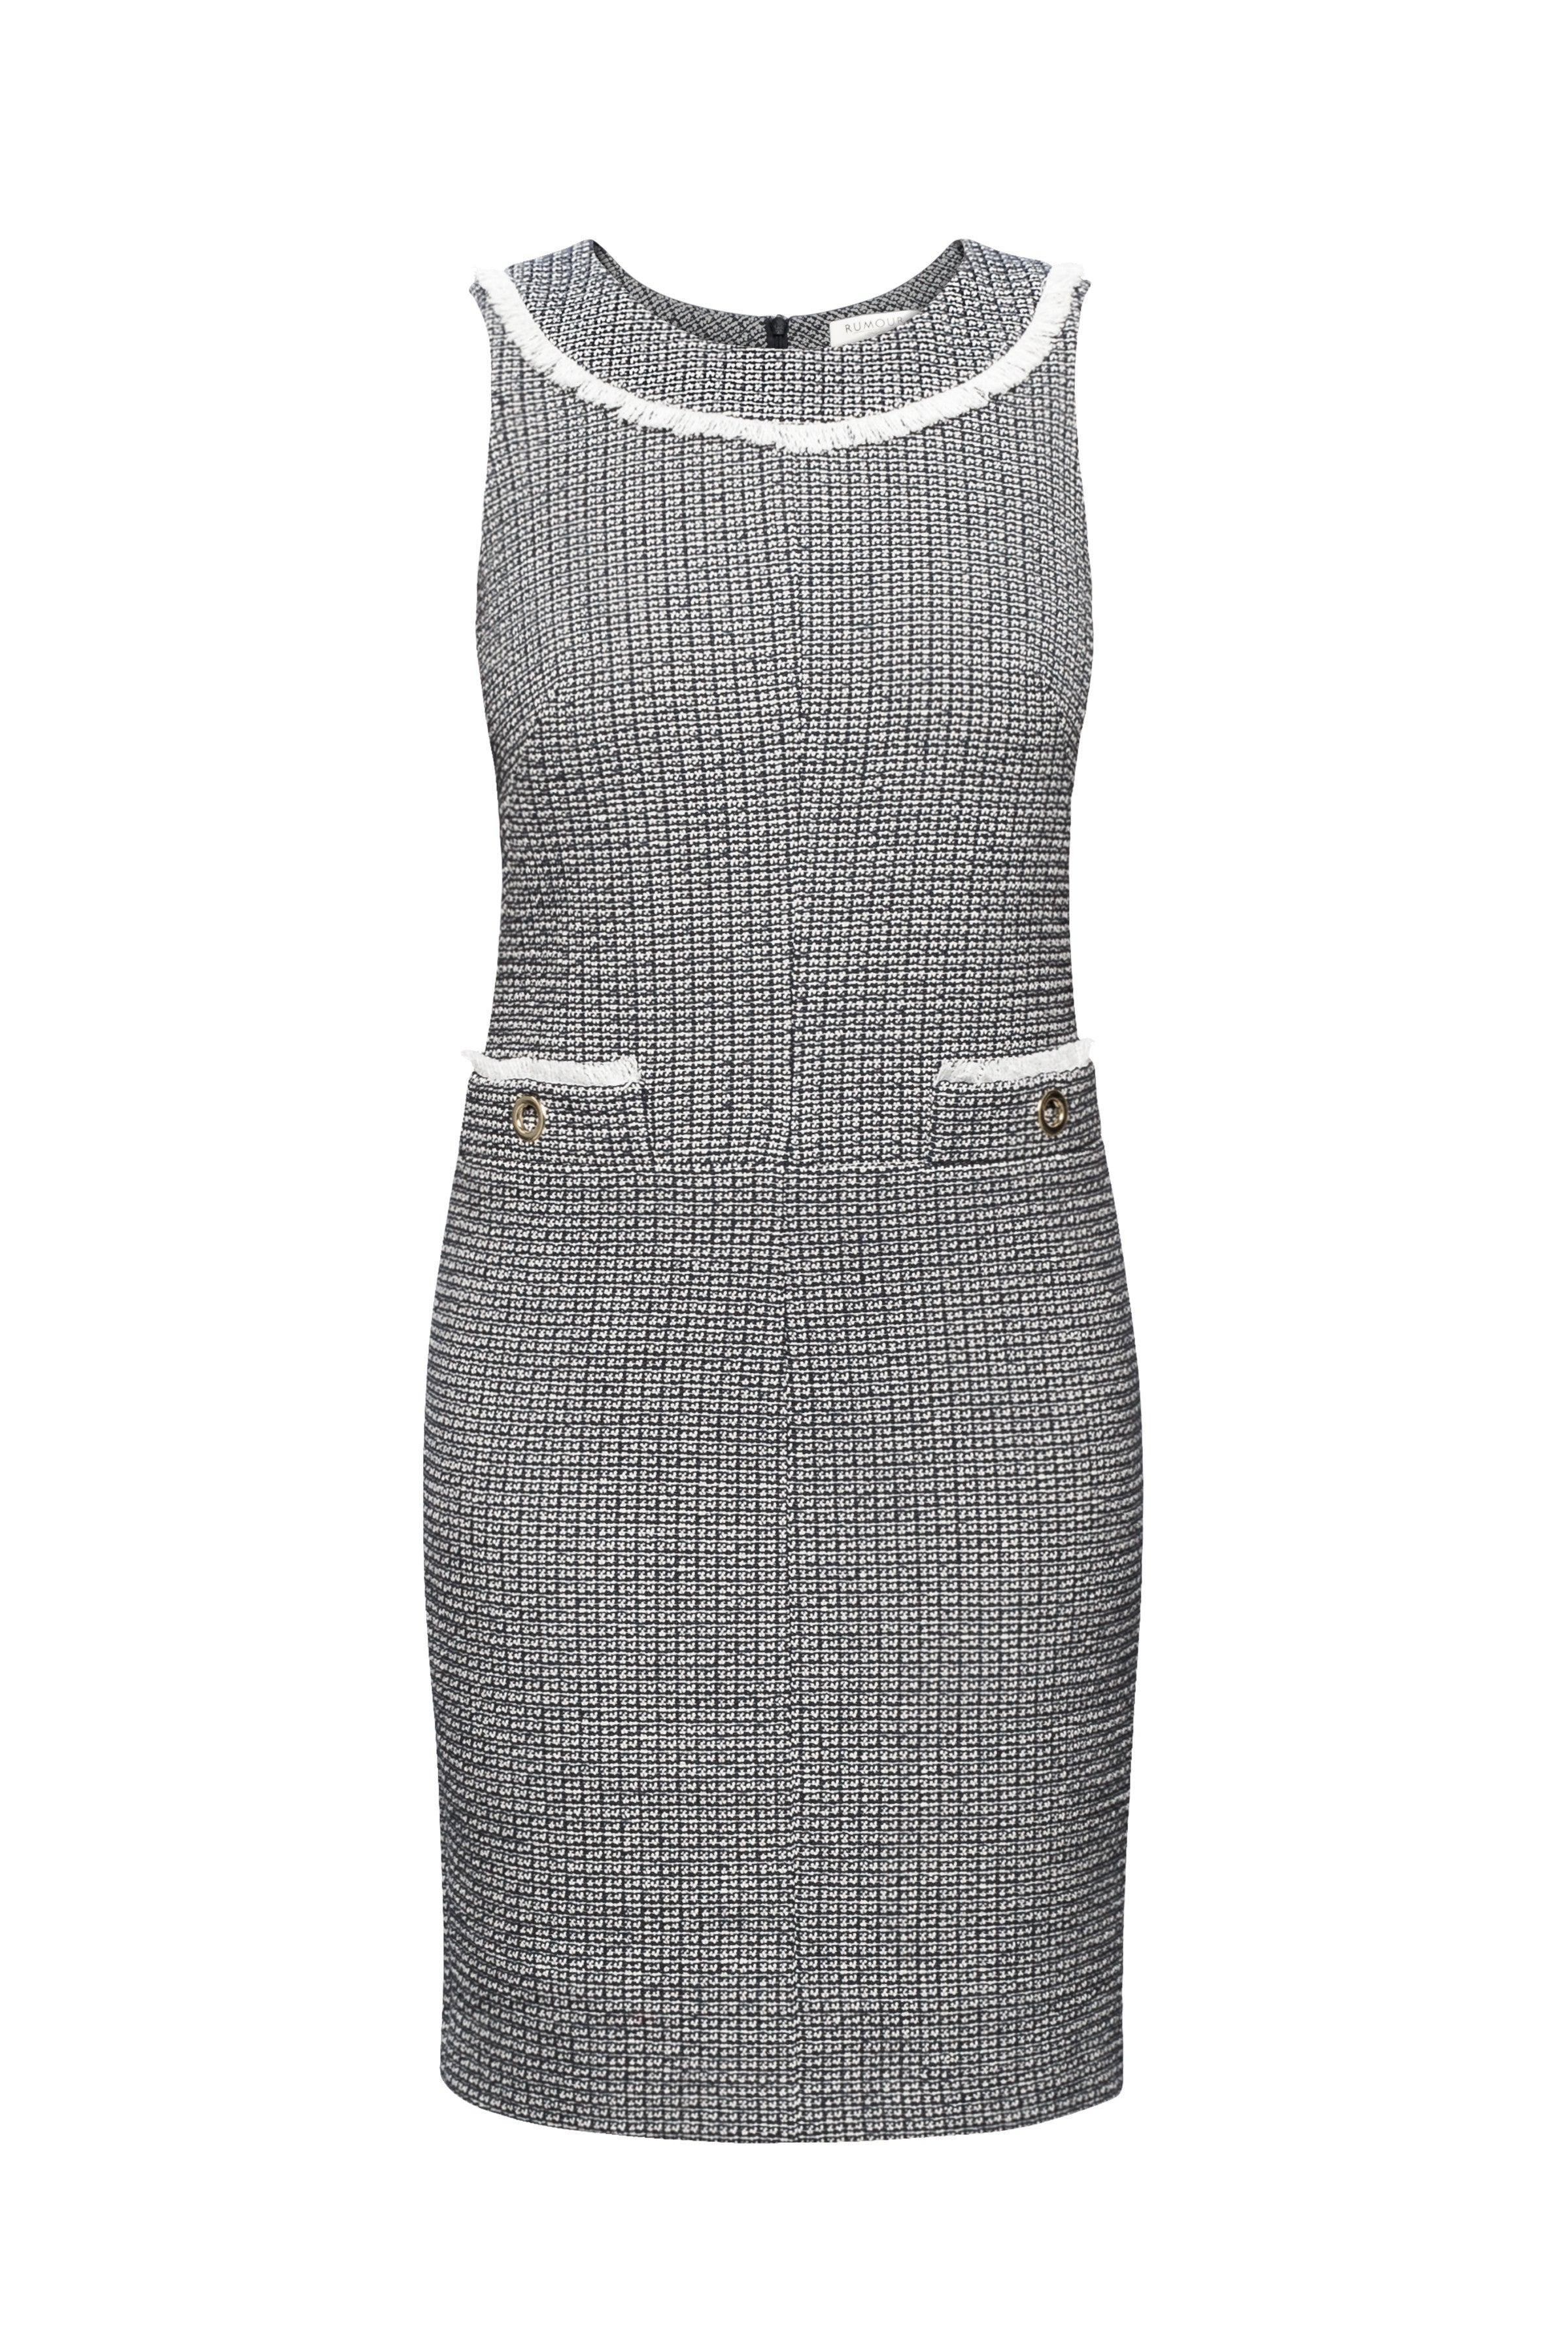 Checked cotton tweed dress with fringed neckline detail